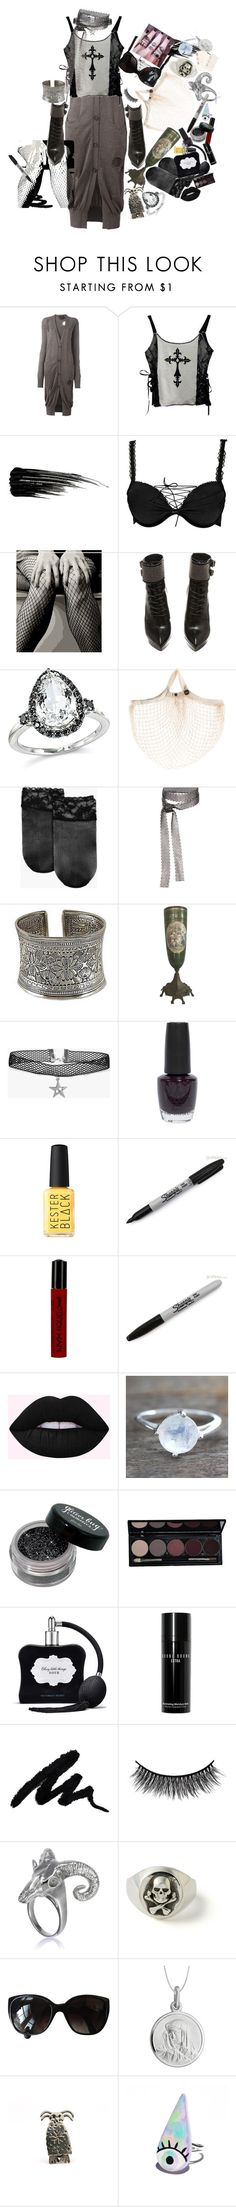 """""""Strange Ways"""" by amanda-anda-panda ❤ liked on Polyvore featuring Vivienne Westwood Anglomania, Urban Decay, Universal Lighting and Decor, Yves Saint Laurent, Clare V., Boohoo, Fallon, NOVICA, OPI and Sharpie"""